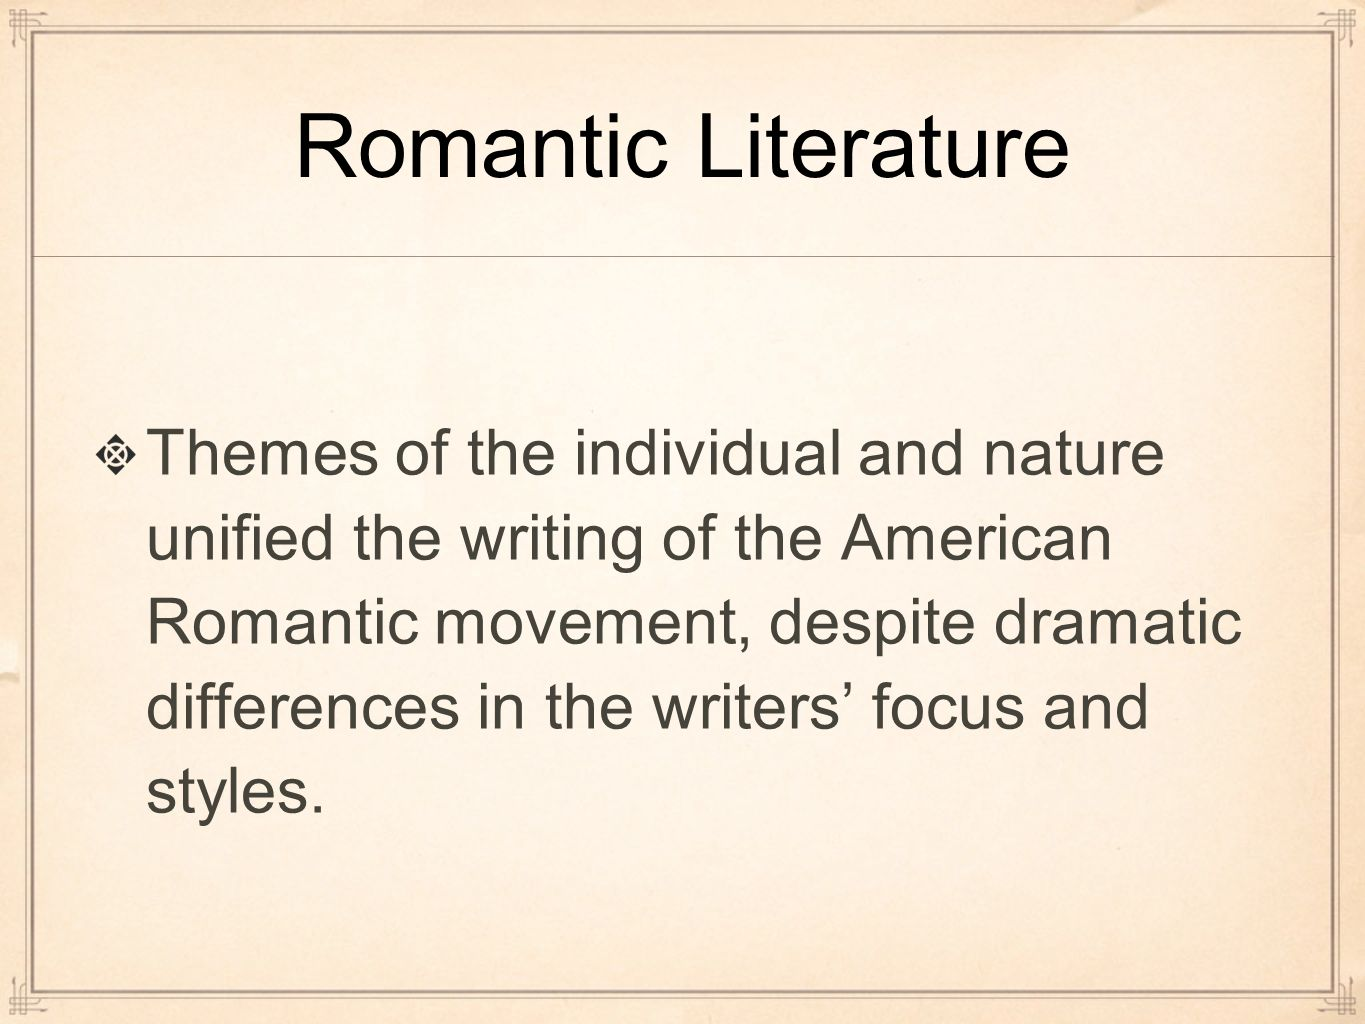 the focus of romantic literature Some of the main characteristics of romantic literature include a focus on the writer or narrator's emotions and inner world celebration of nature, beauty, and imagination rejection of .